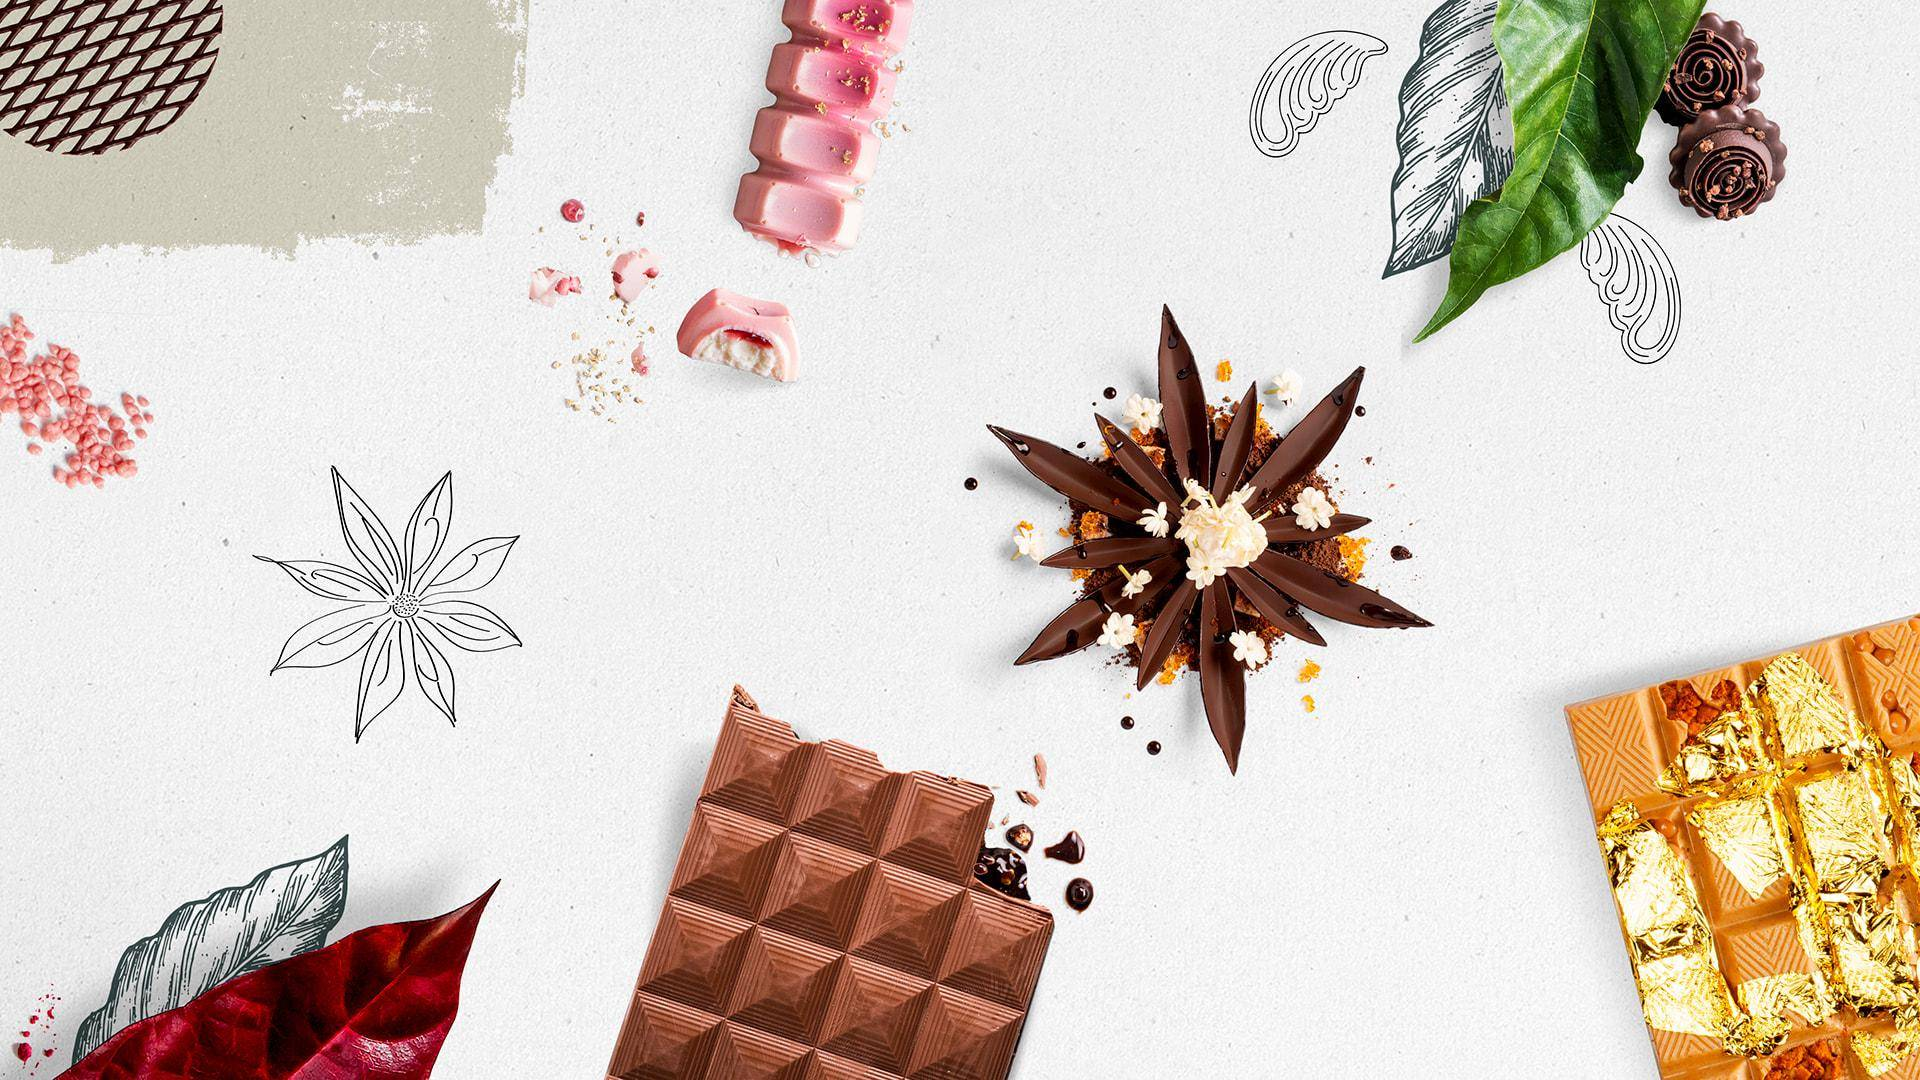 Full-Year Results of the Barry Callebaut Group